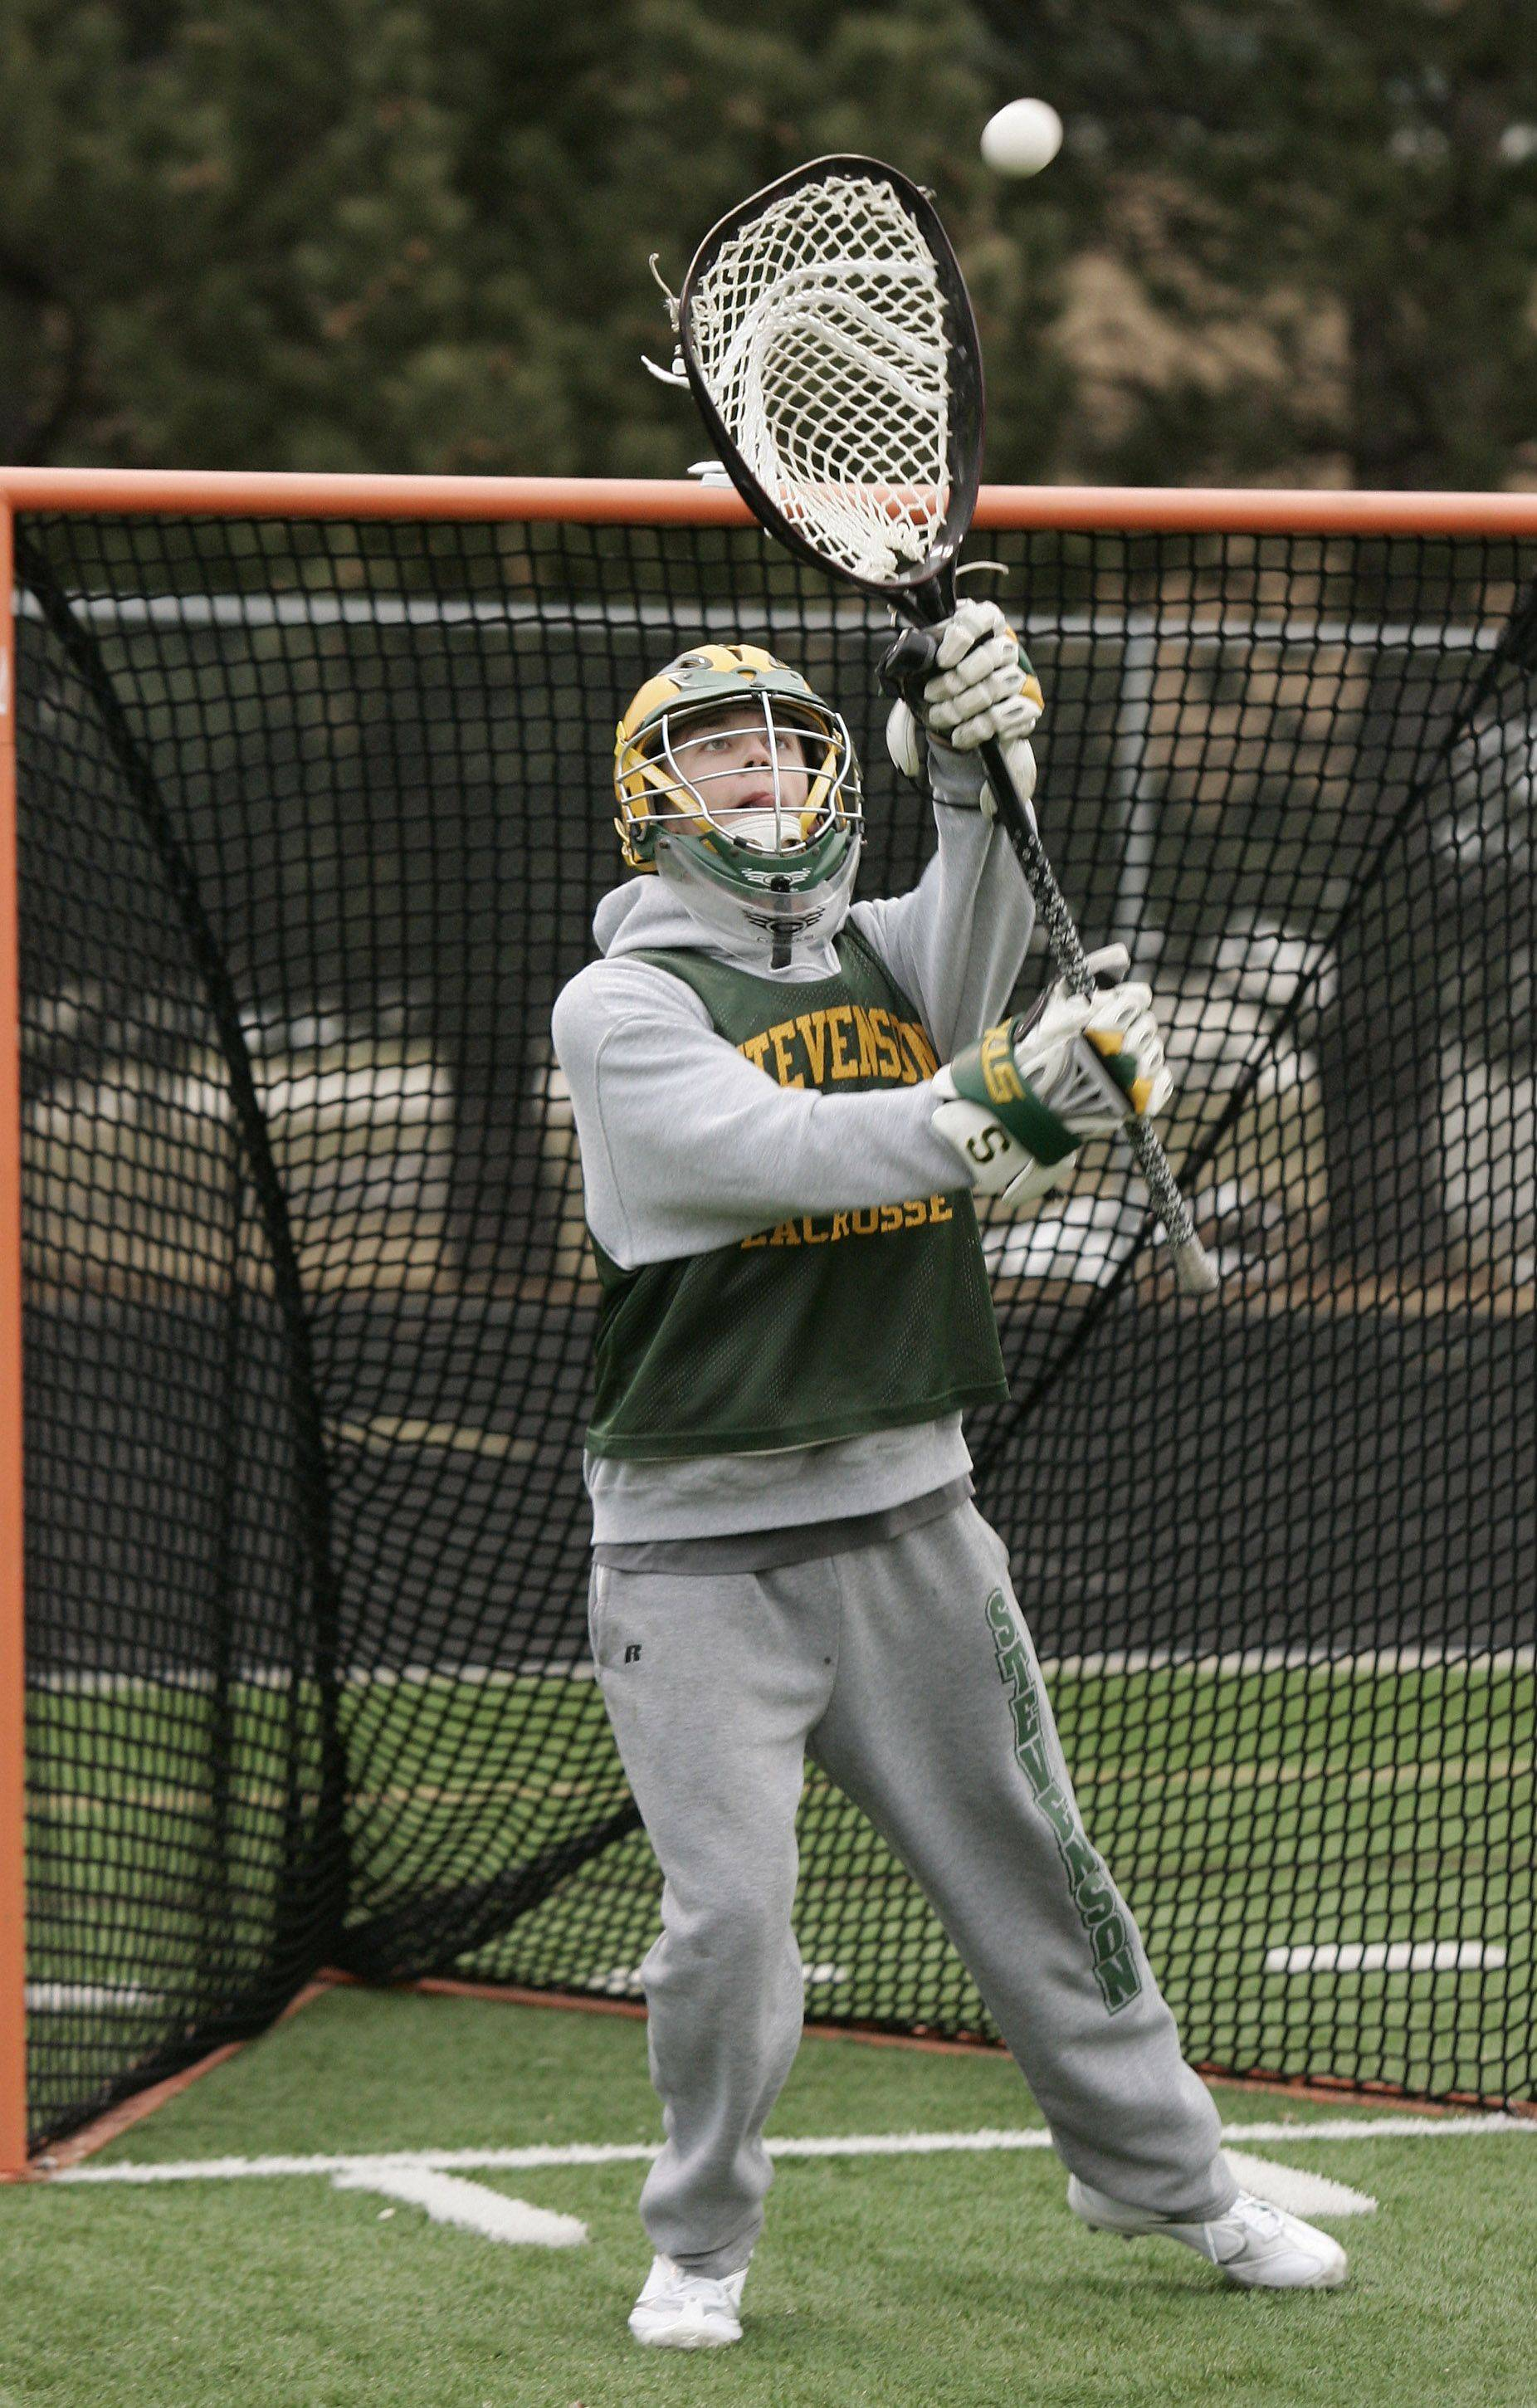 Goalkeeper Max Huber blocks a shot as the boys lacrosse team practice at Stevenson High School in Lincolnshire.